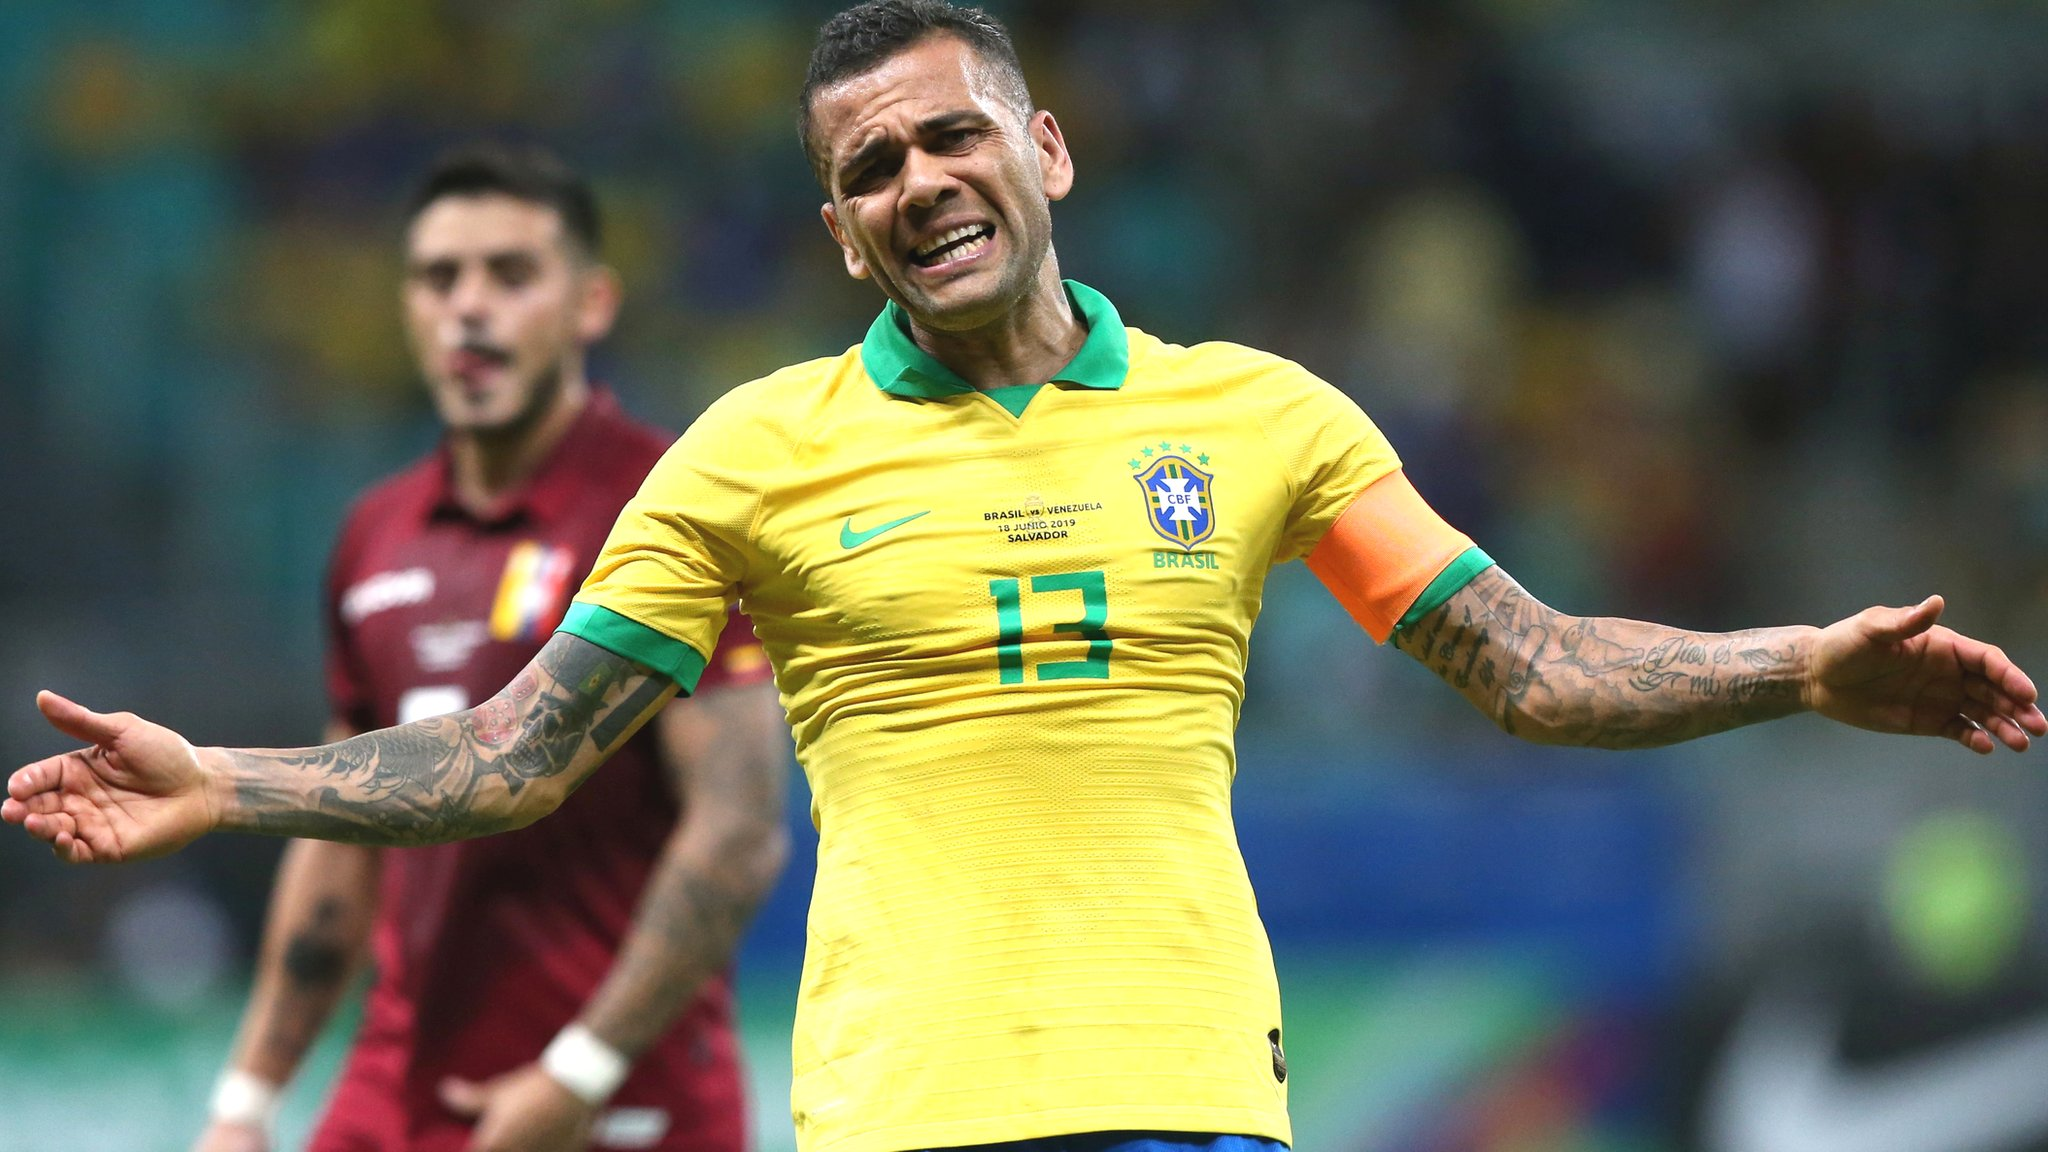 Copa America: Brazil booed off pitch after 0-0 draw with Venezuela